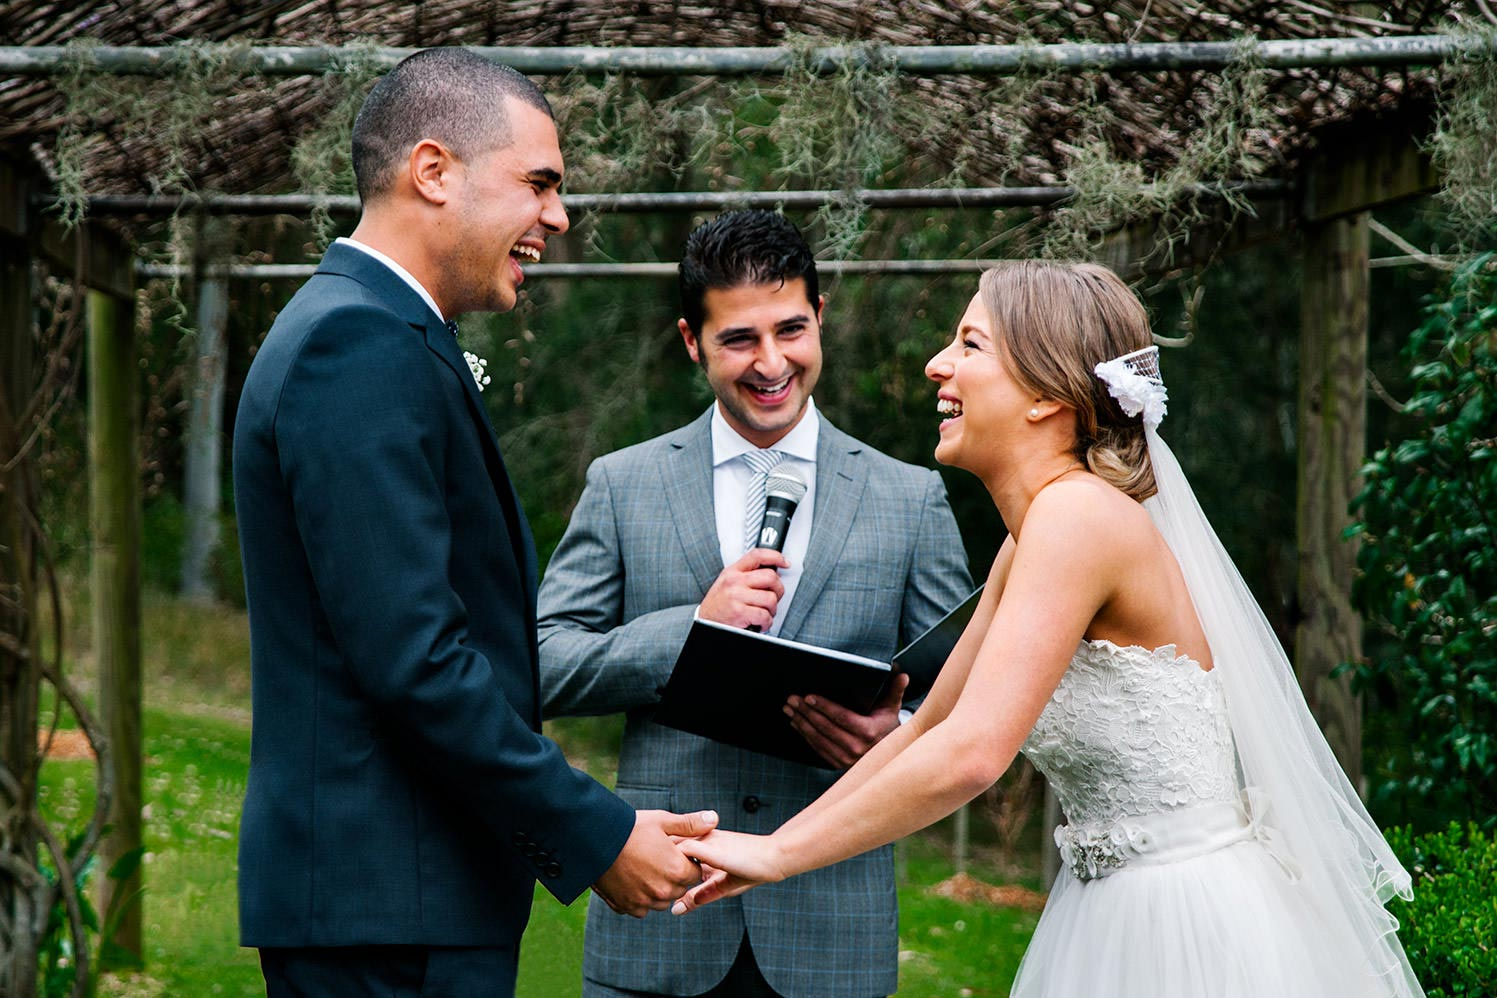 Greenfield Farm - happy bride and groom during wedding ceremony